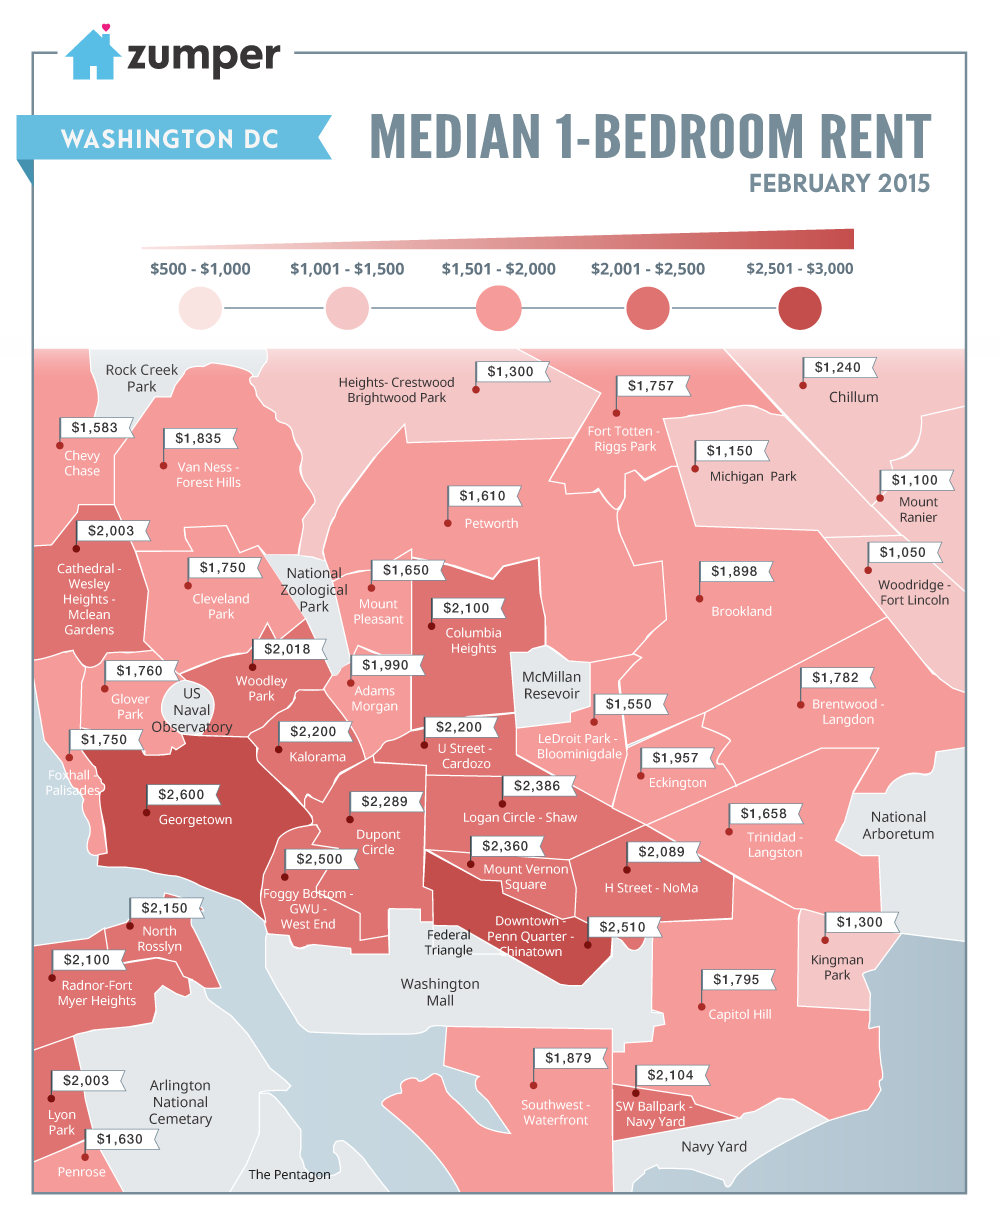 image. The Cost of a One Bedroom Rental in DC